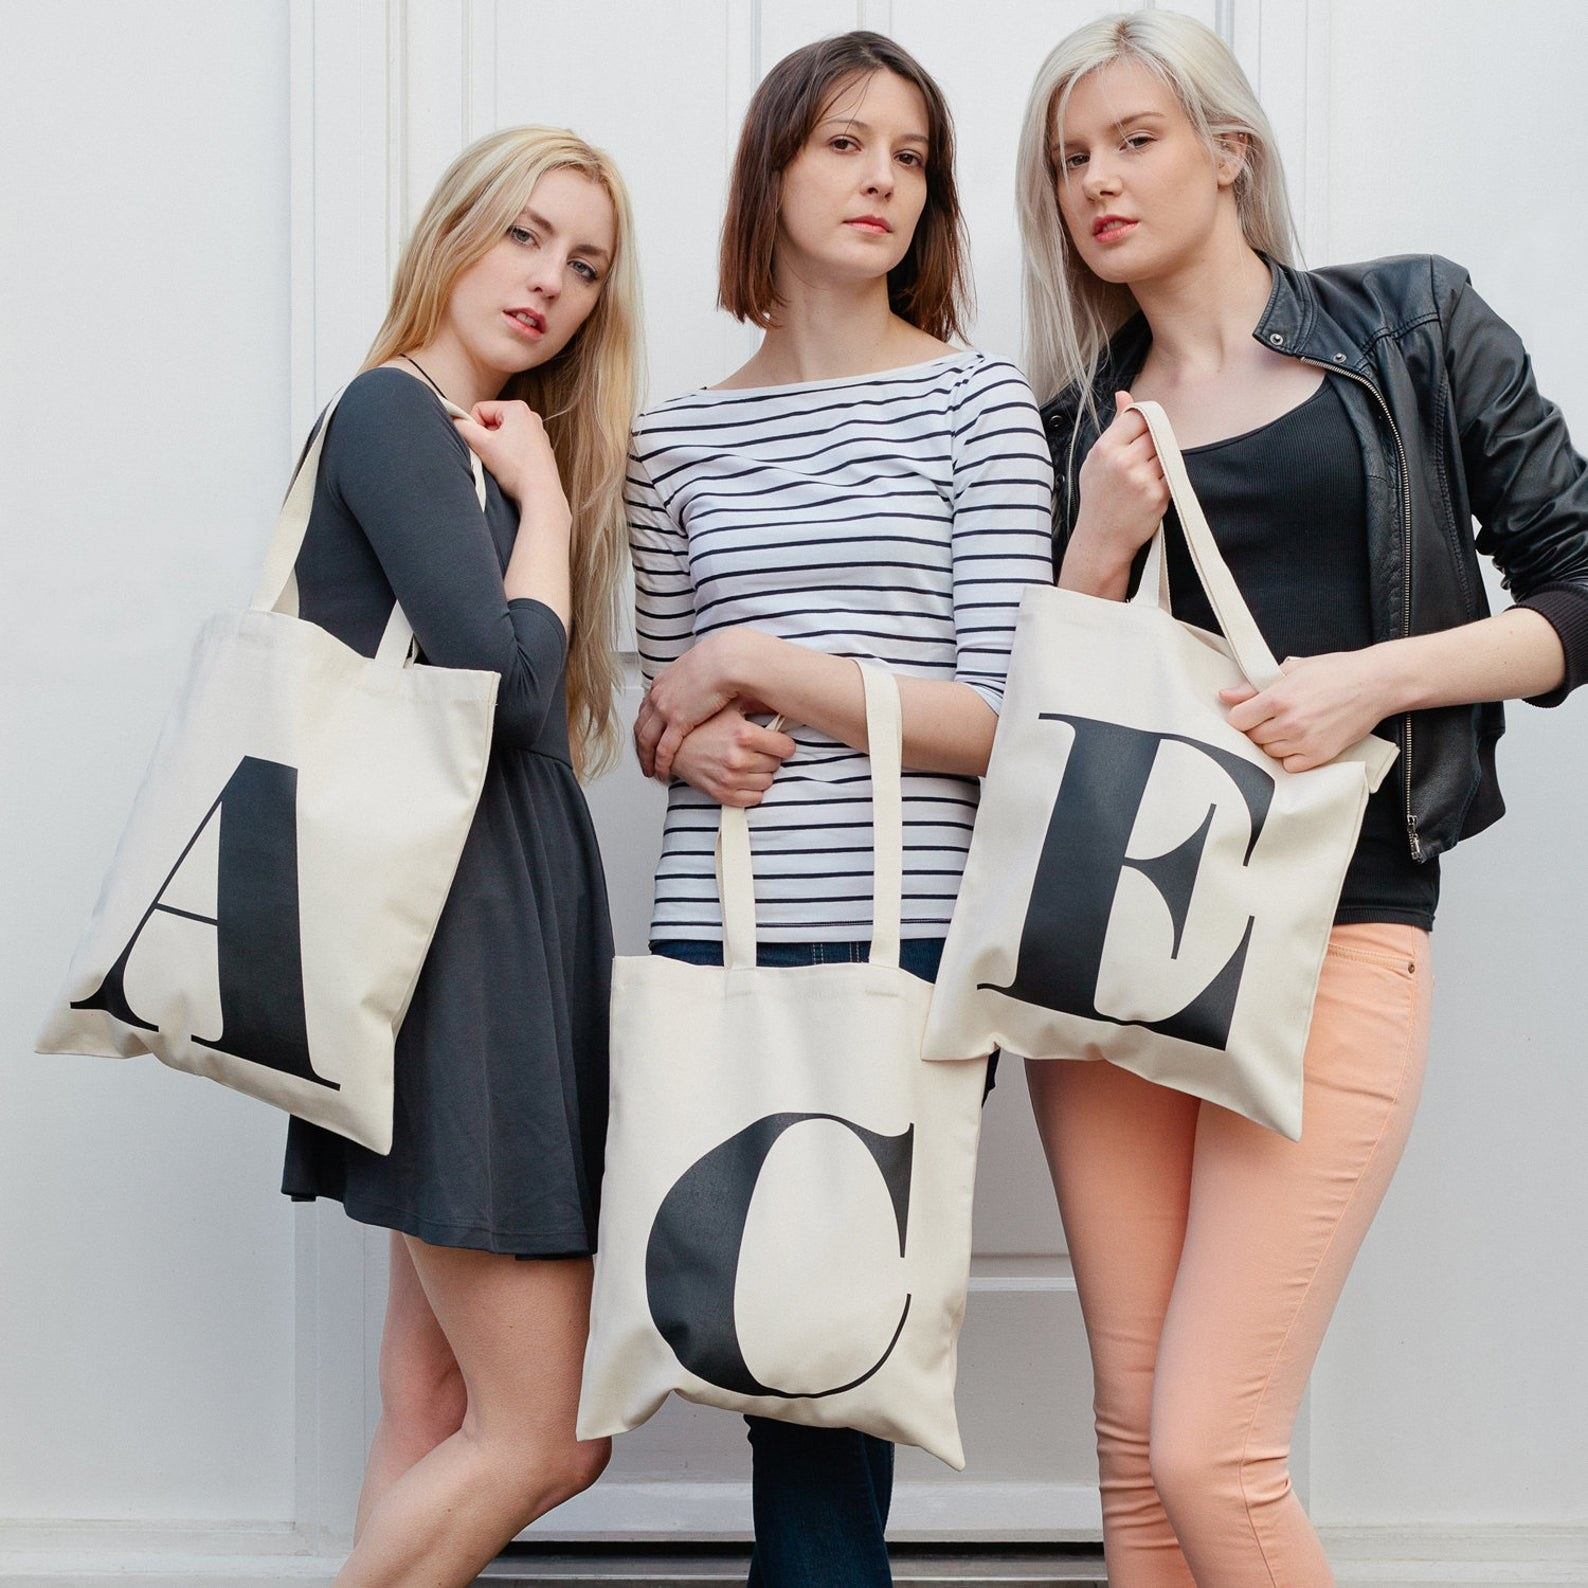 three models each hold a tote bag with a different letter screen printed on it